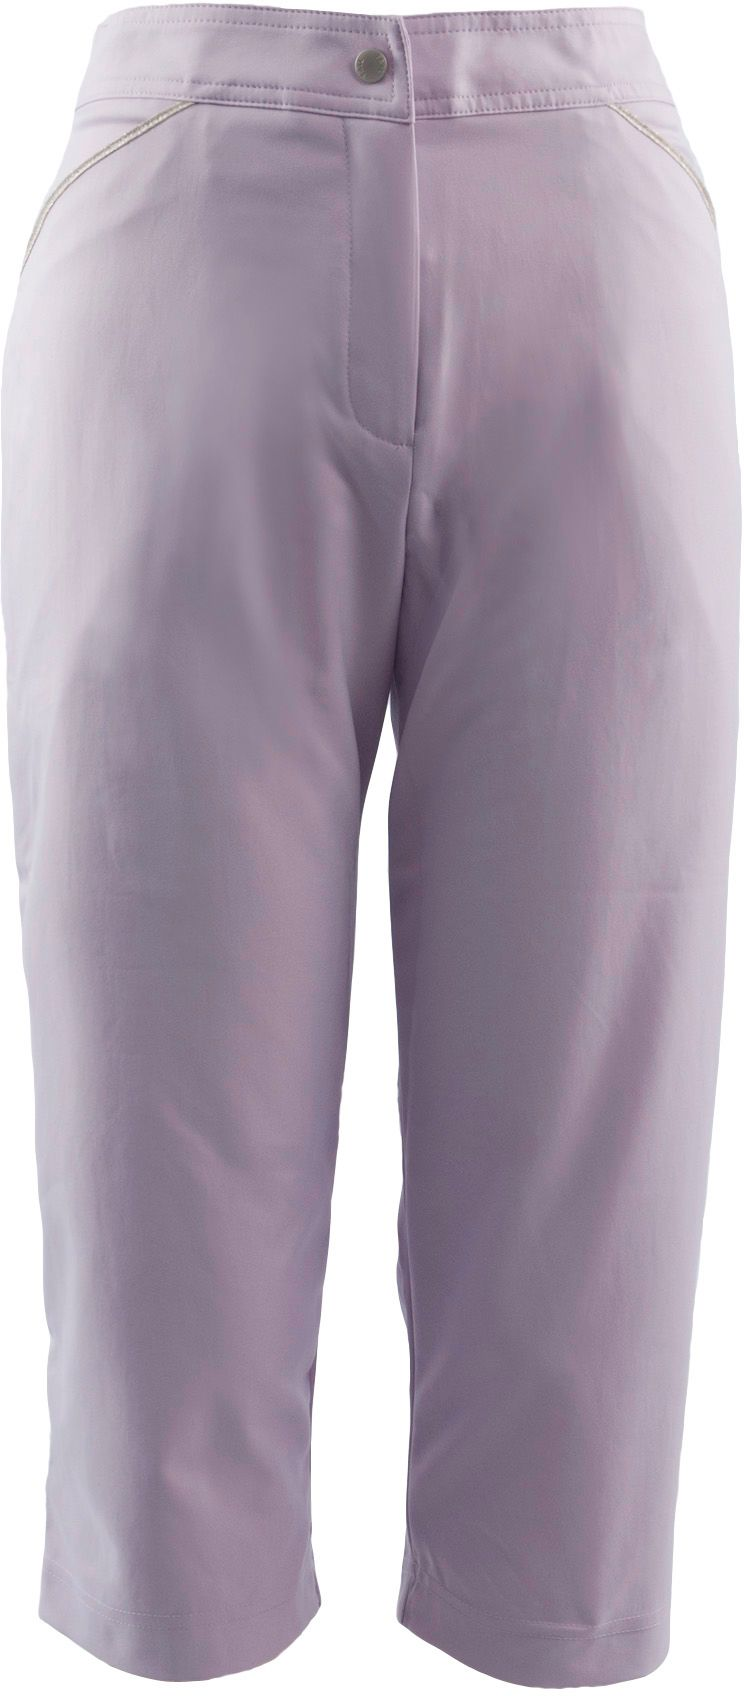 Tail Activewear Women's Secure Smooth Lilac Capri